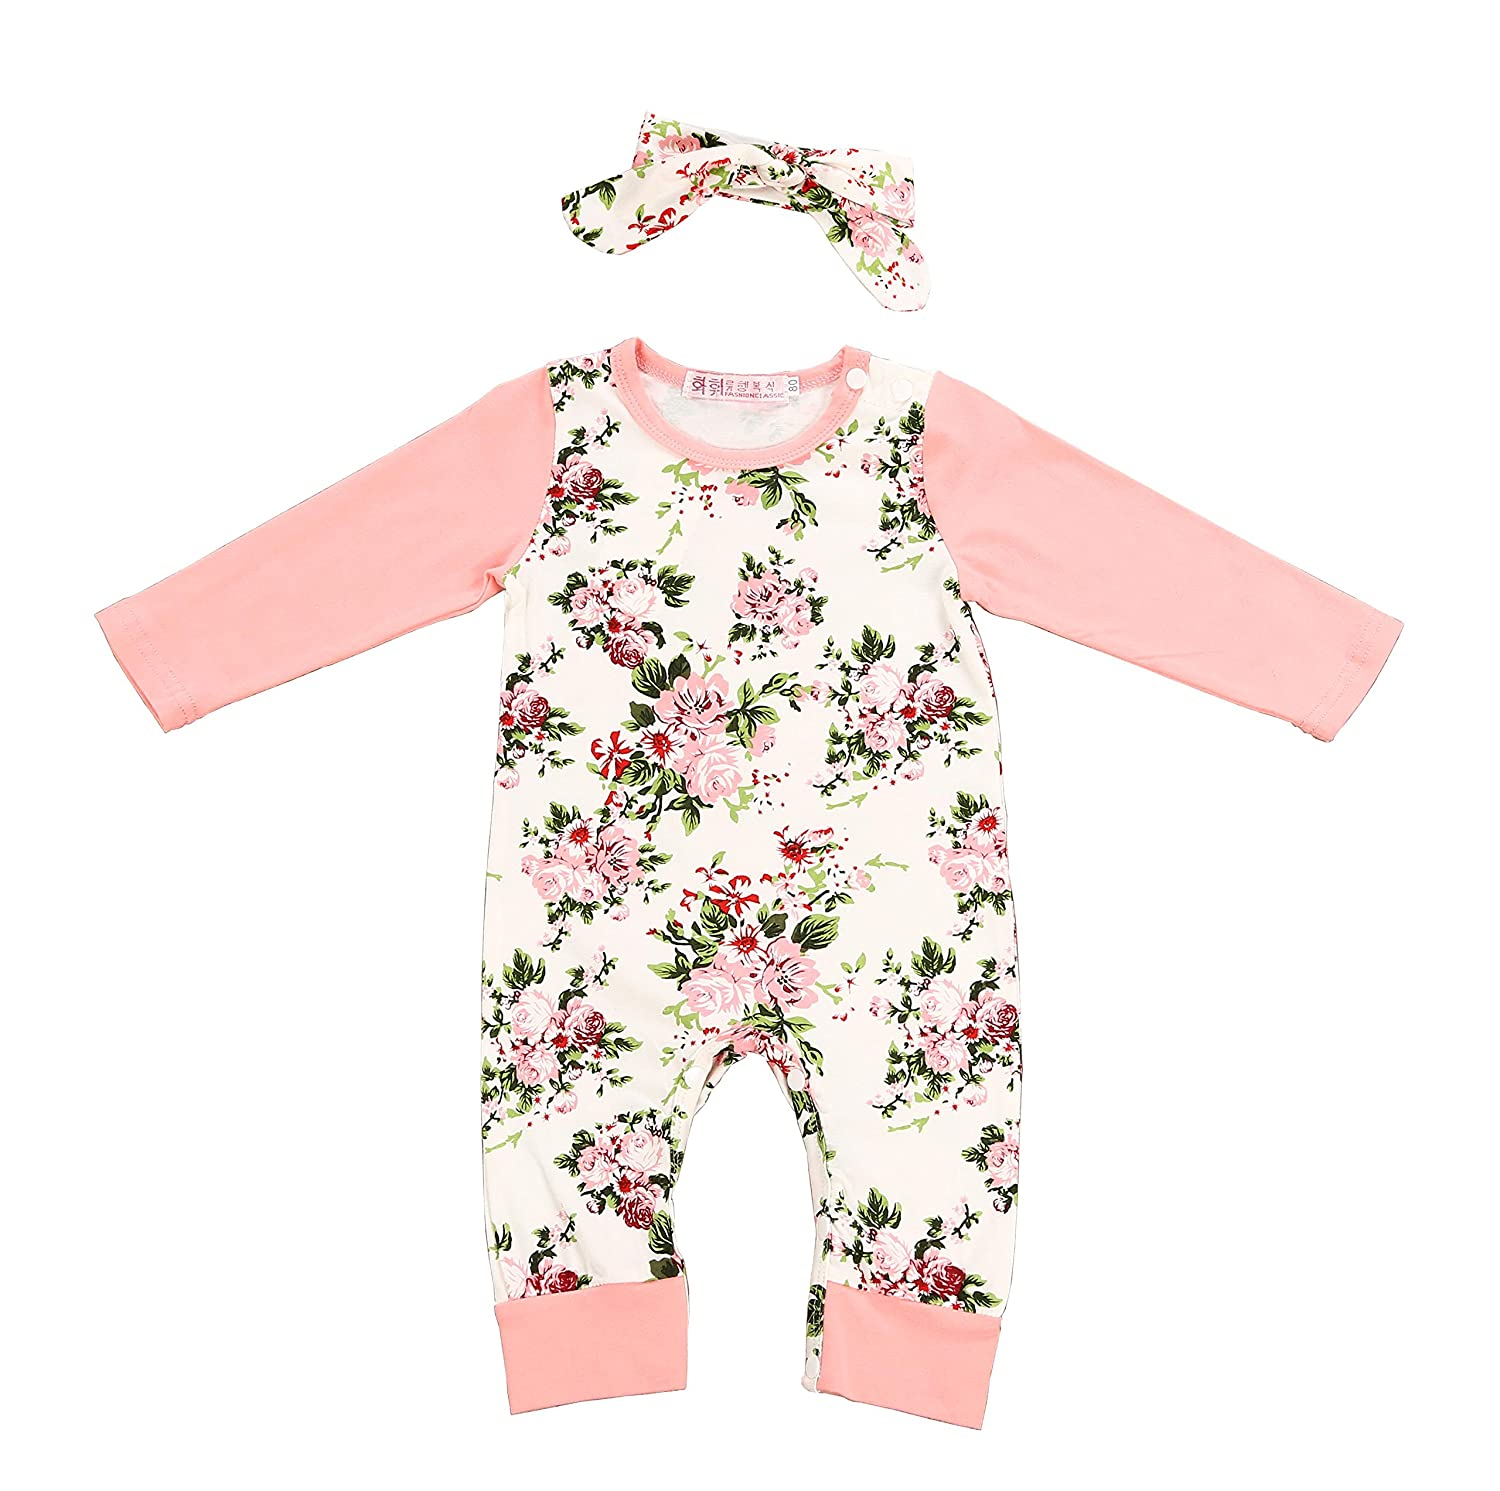 Newborn Baby Girl Winter Clothes Cute Floral Long Sleeve Onesies Romper Headband Coming Home Outfit